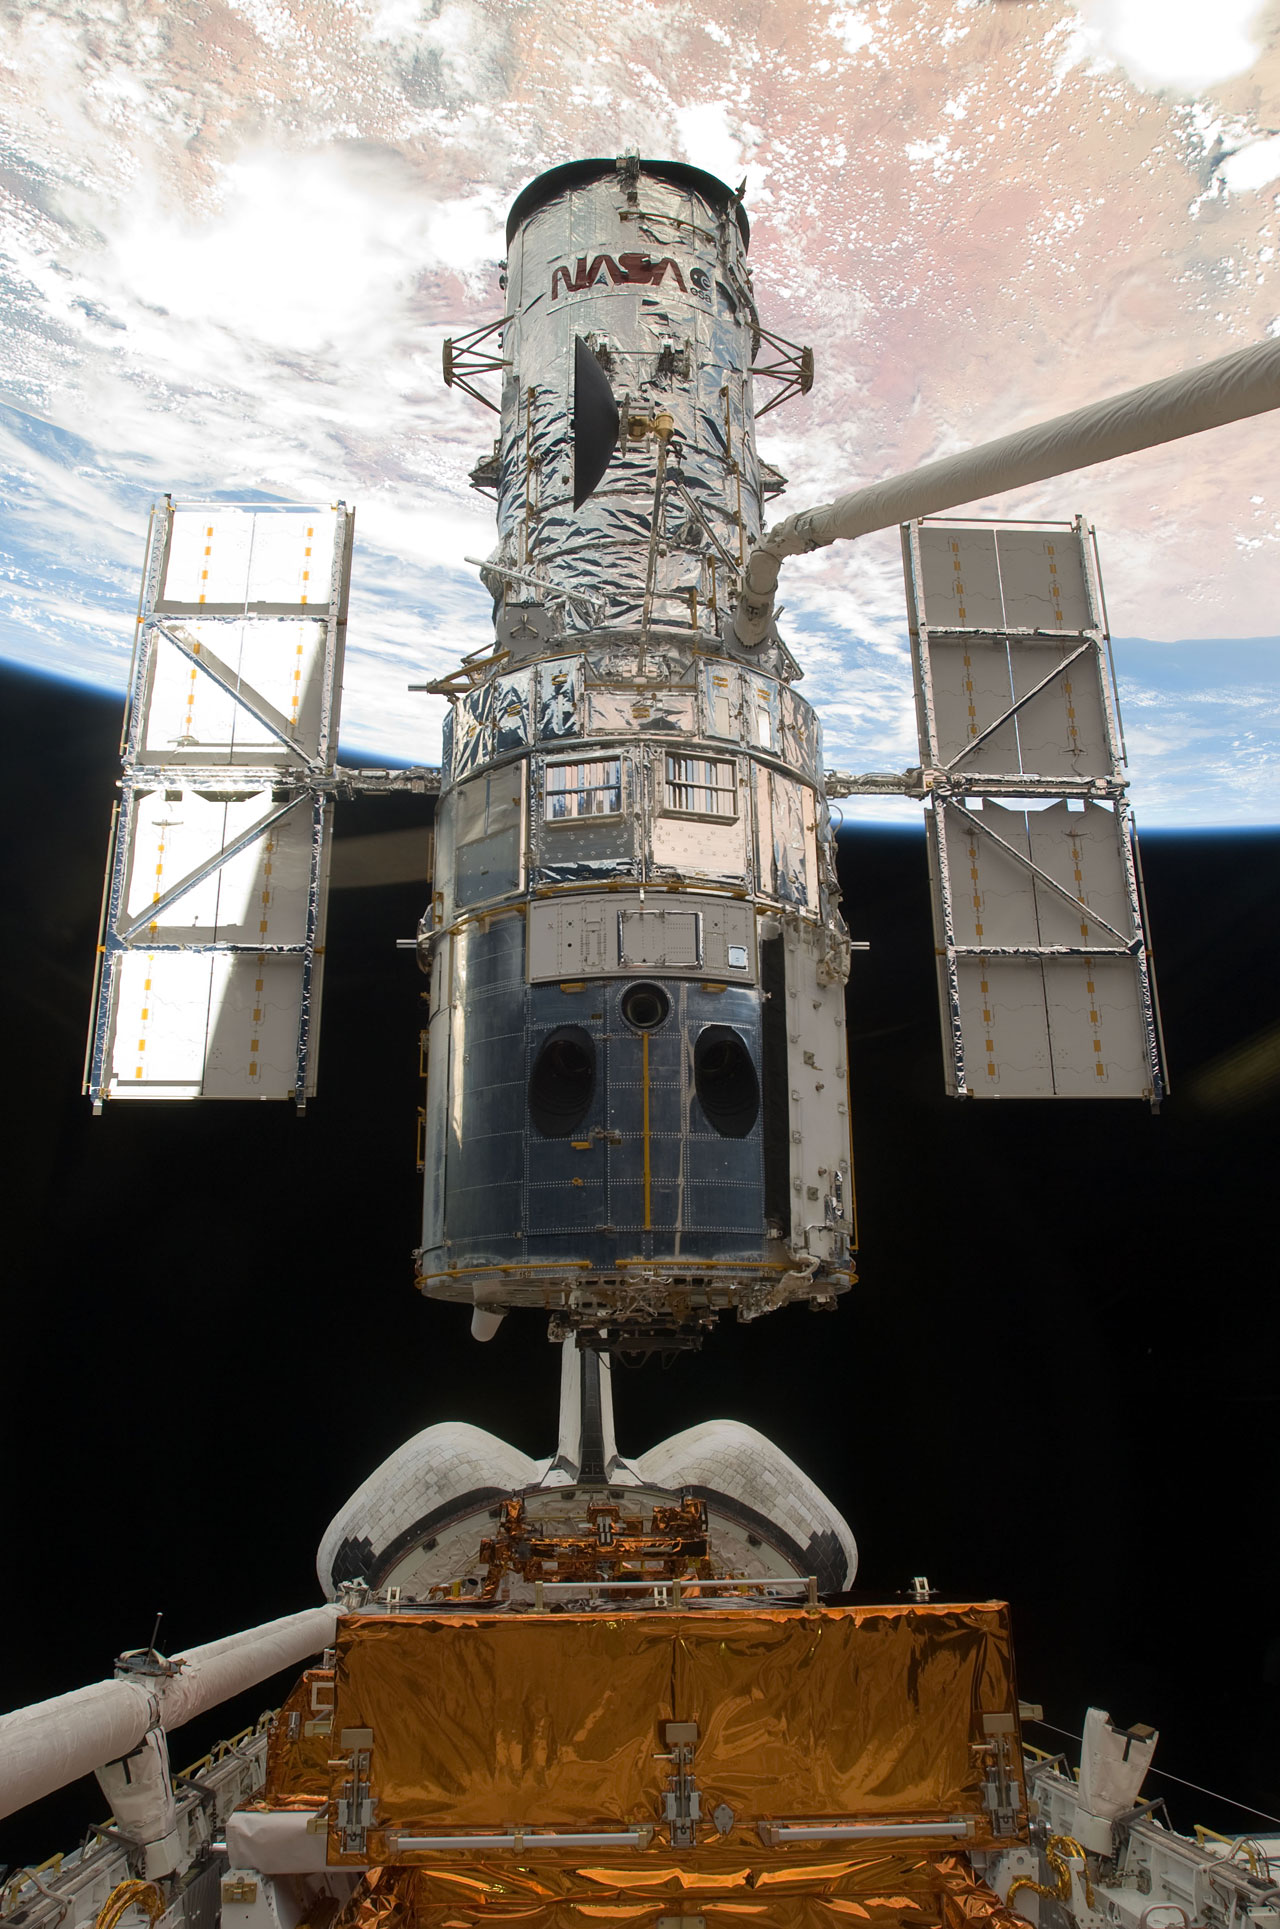 Sm4  Hubble Space Telescope Just Before Astronauts